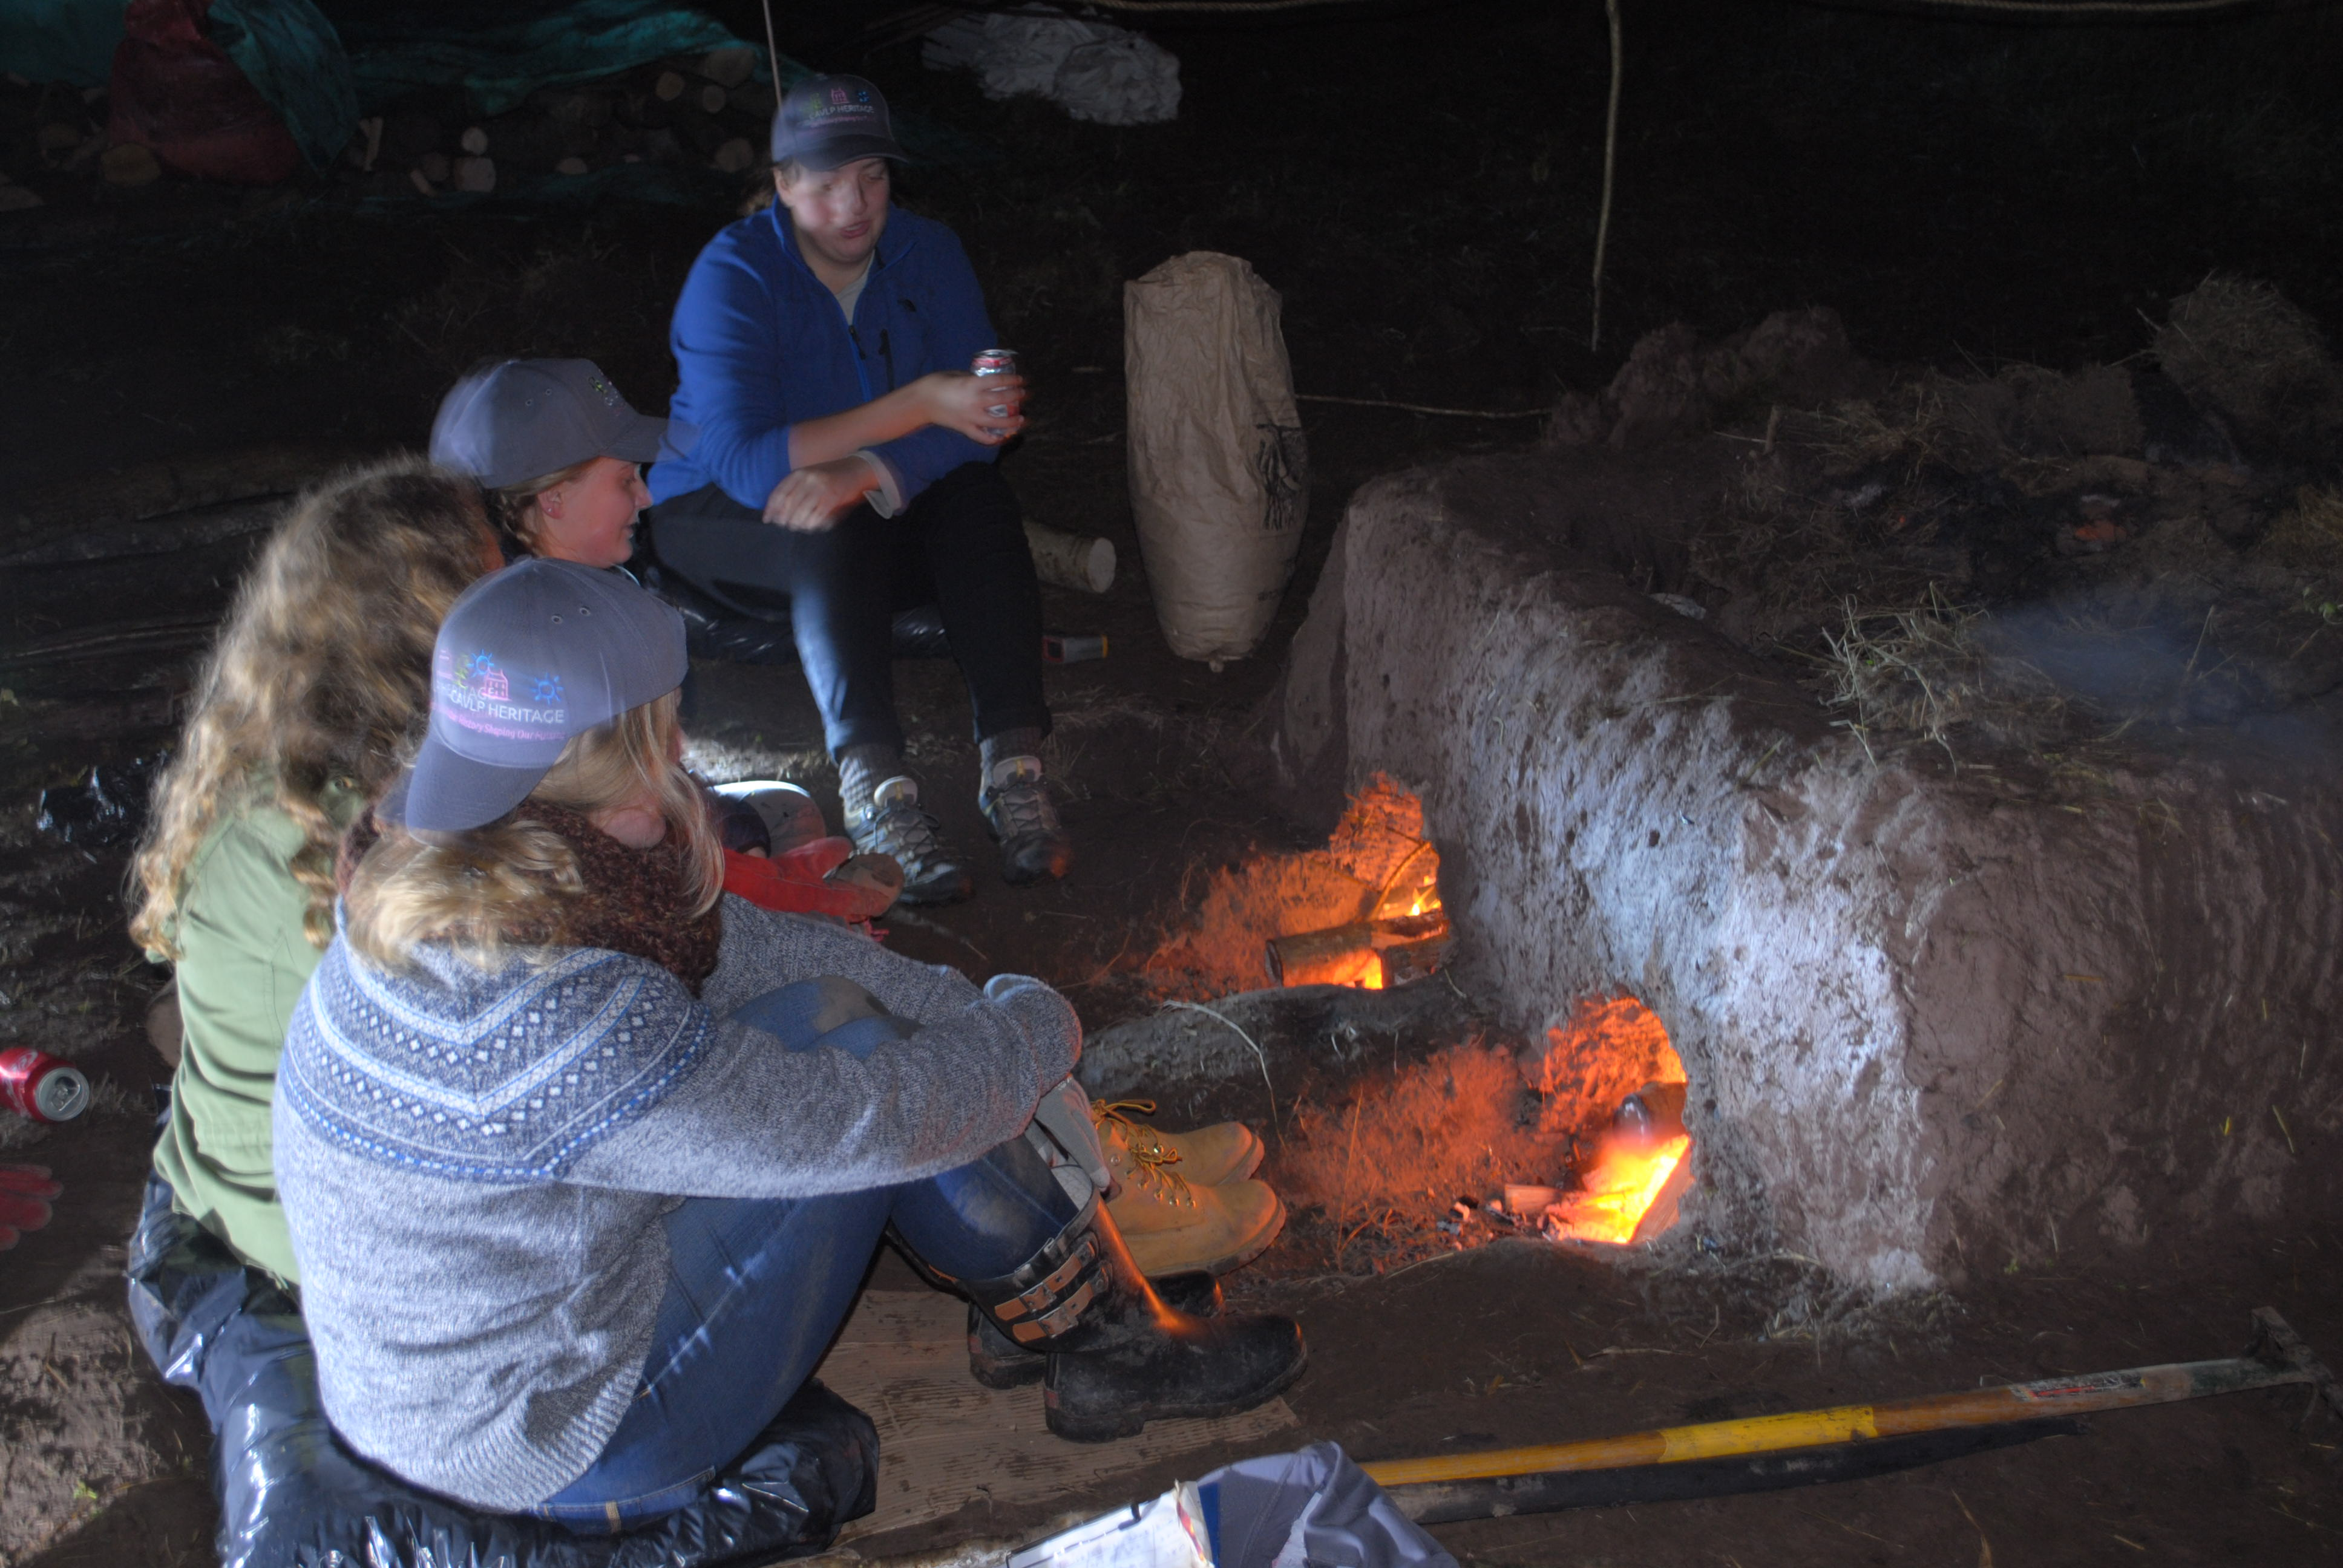 Volunteers keeping the tile kiln fire stoked late into the night